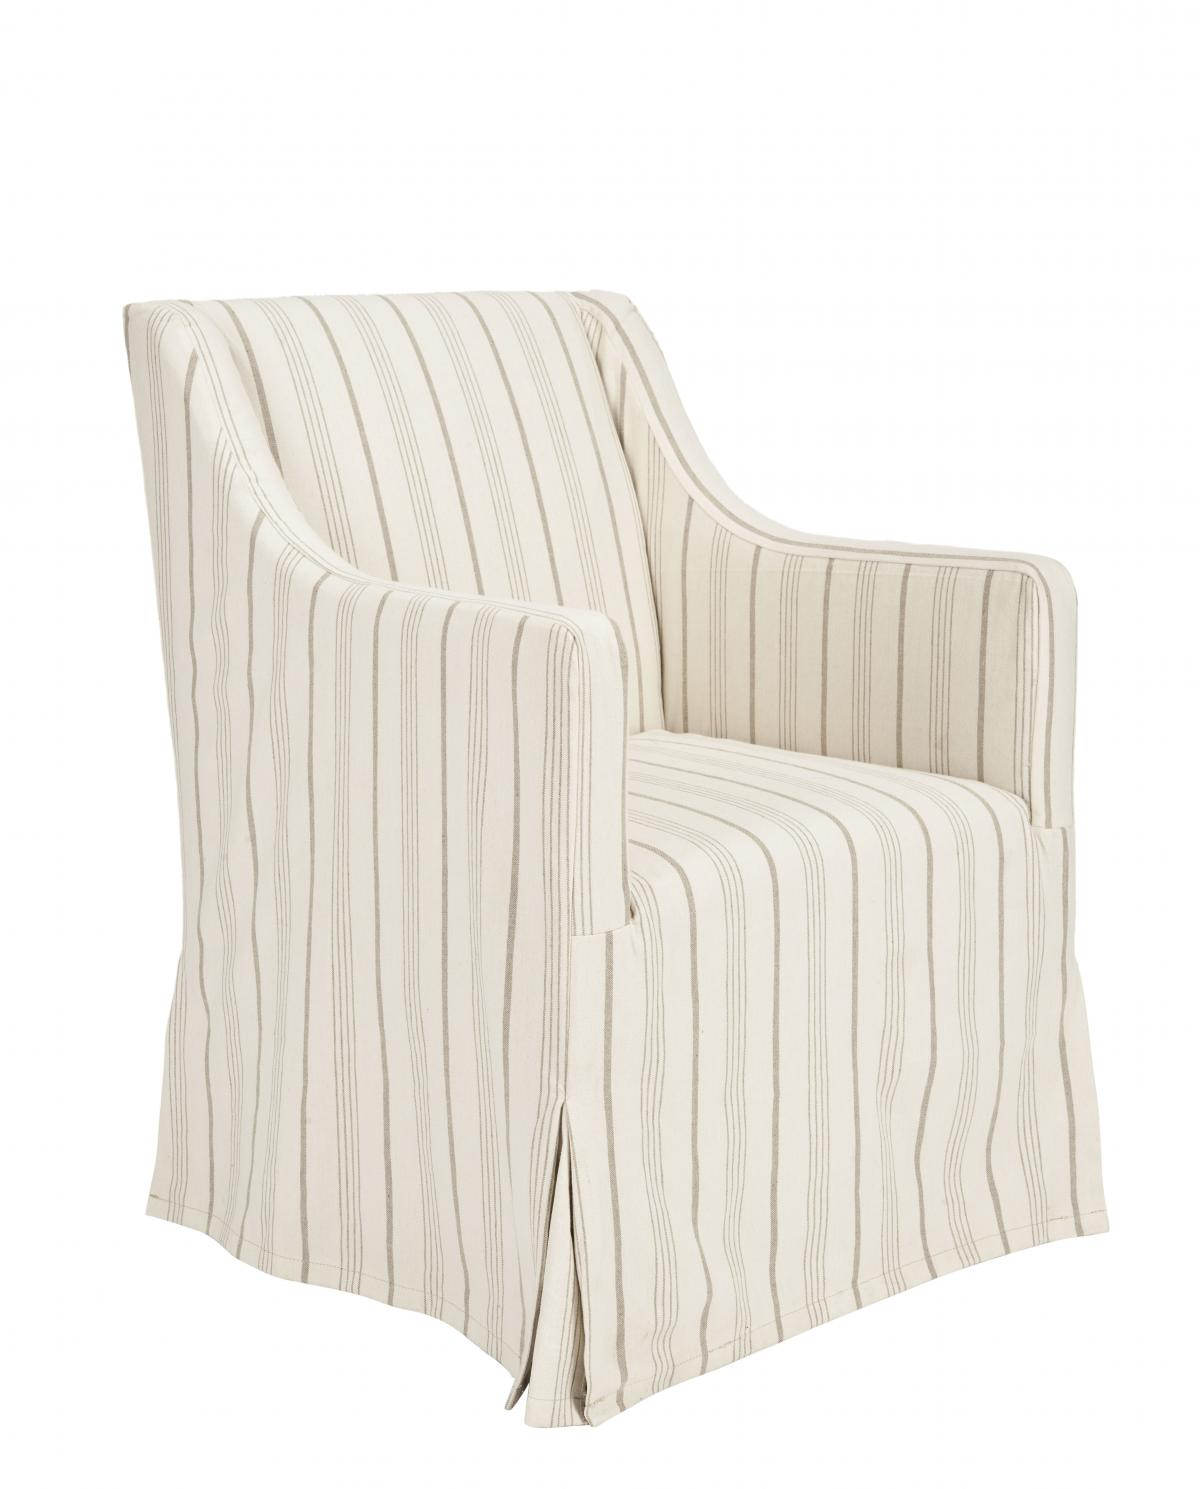 Mcr4542a Accent Chairs Furniture By Safavieh